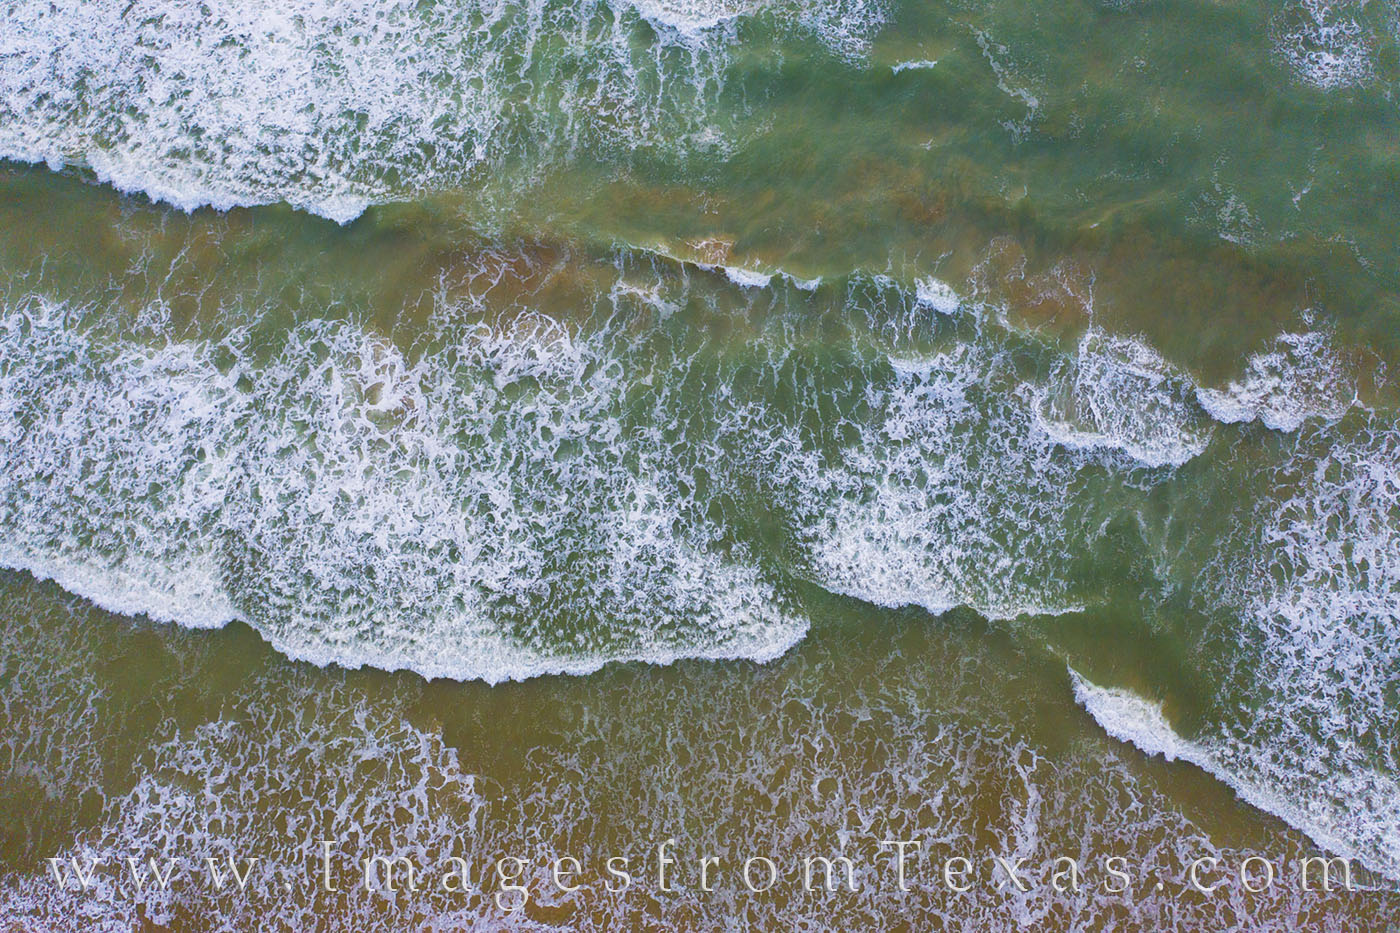 south padre island, drone, aerial, waves, green, aqua, salt spray, beach, resort, texas coast, photo